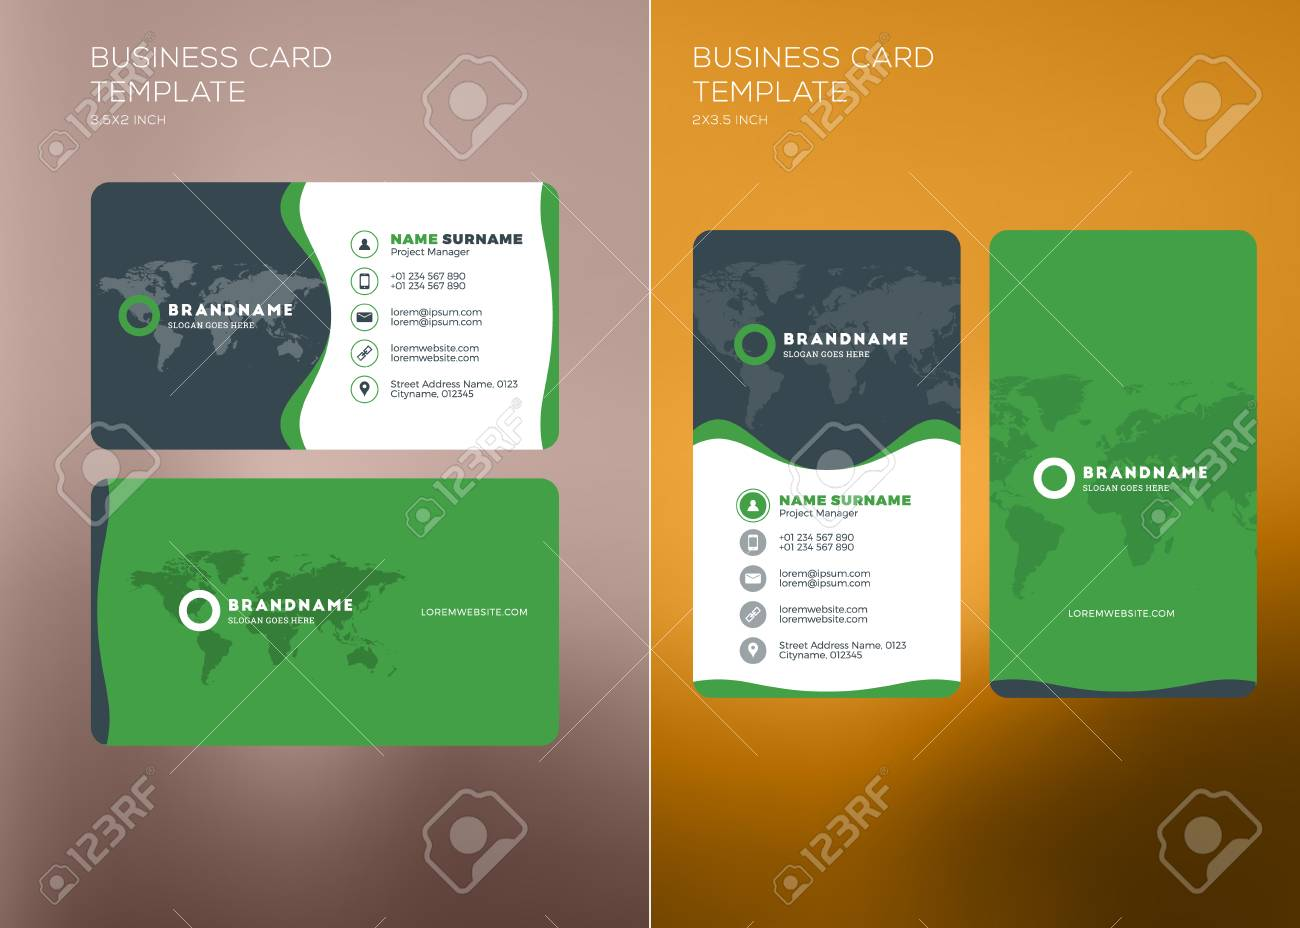 Corporate business card print template personal visiting card corporate business card print template personal visiting card with company logo vertical and horizontal cheaphphosting Image collections